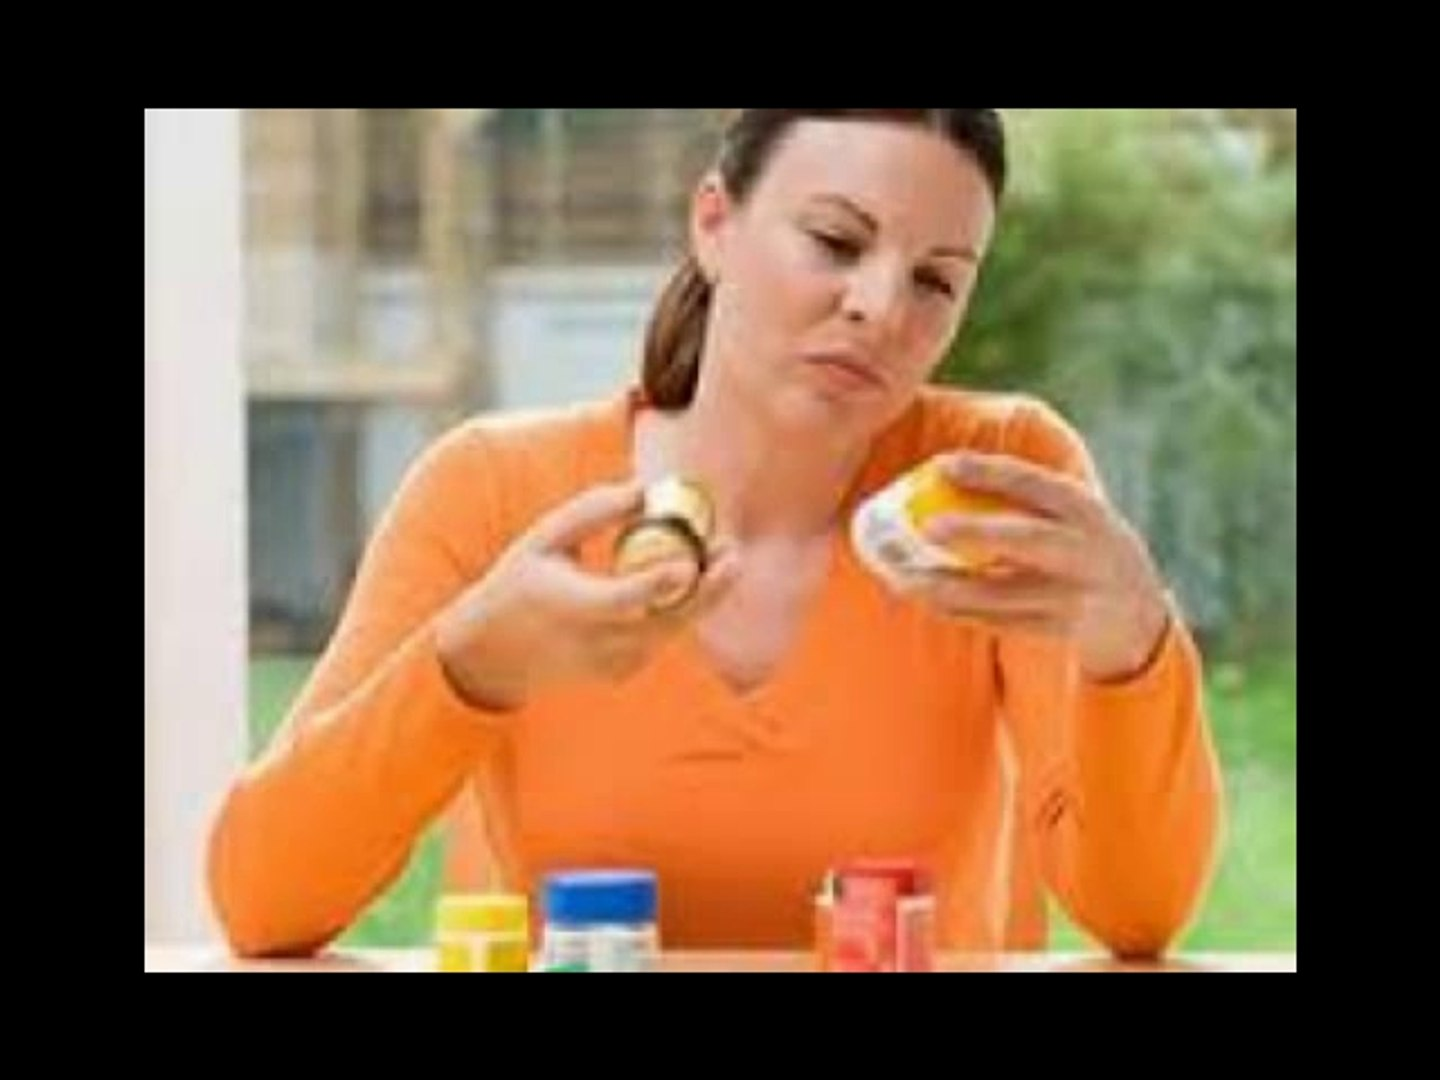 Supplements for weightloss in jacksonville, Jacksonville weightloss supplments